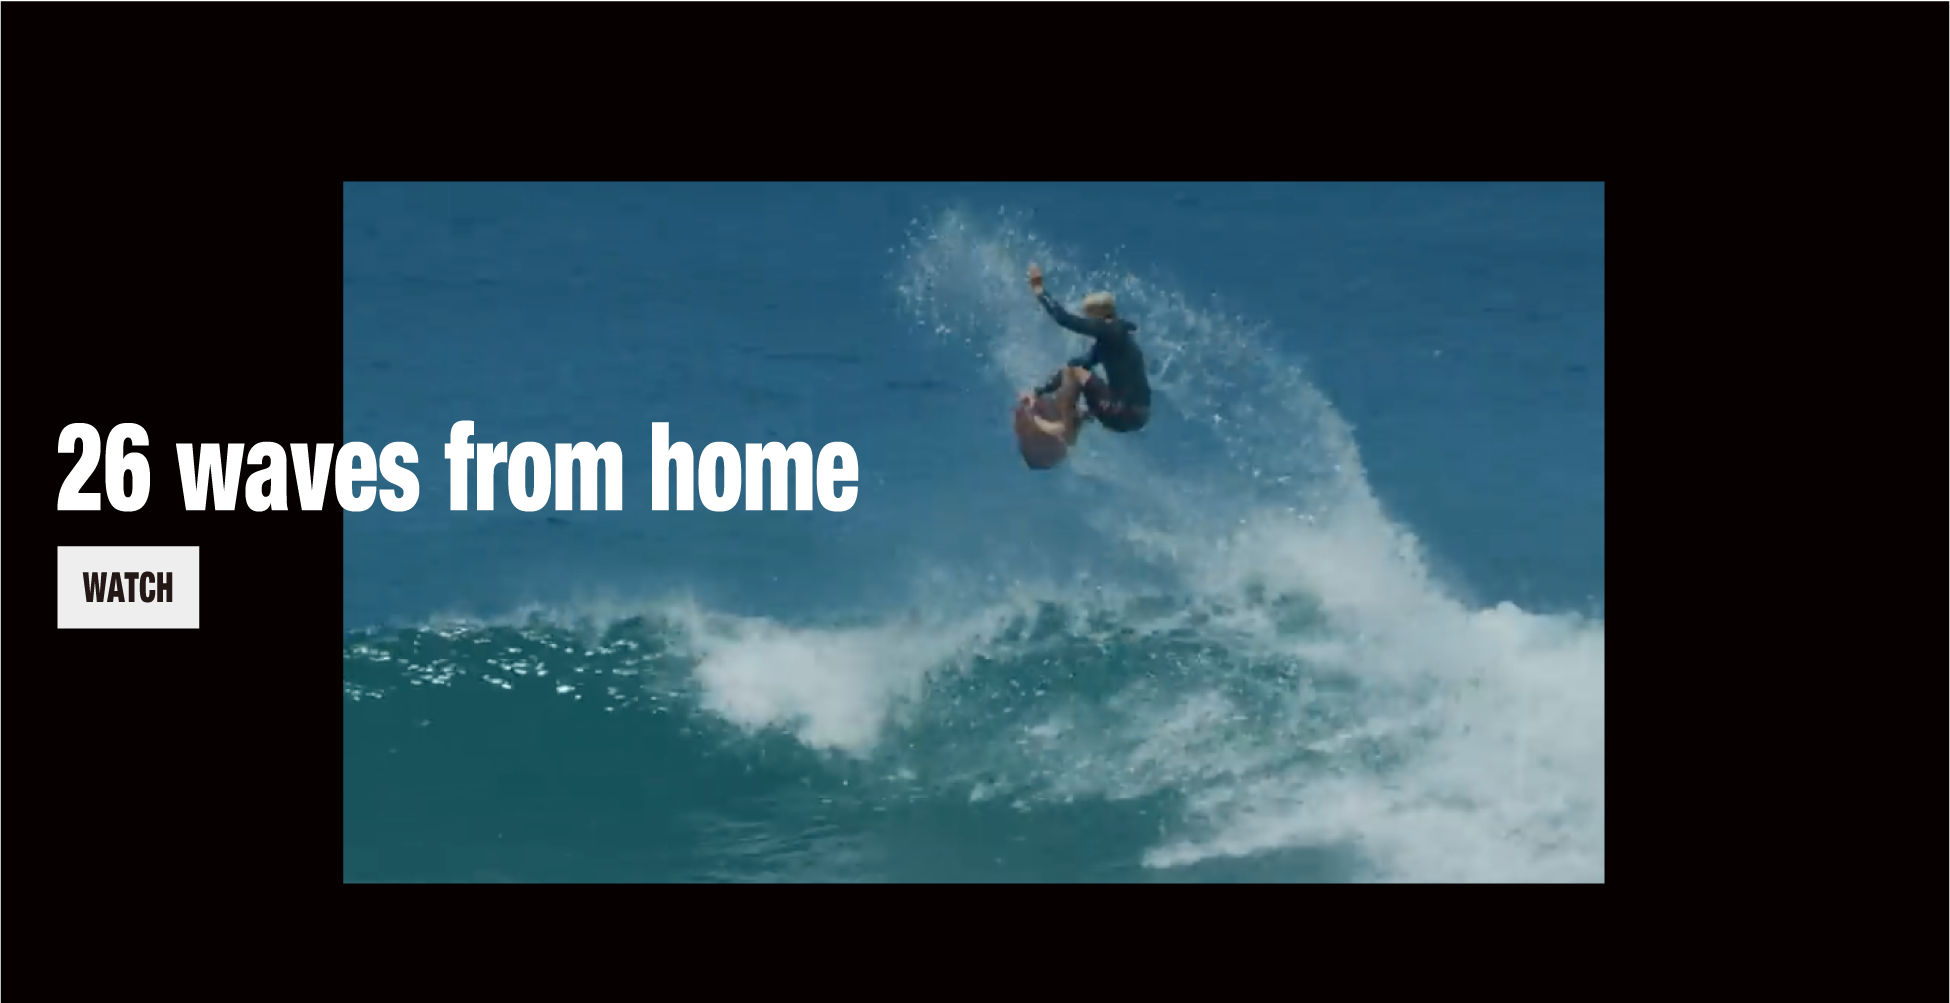 26 waves from home